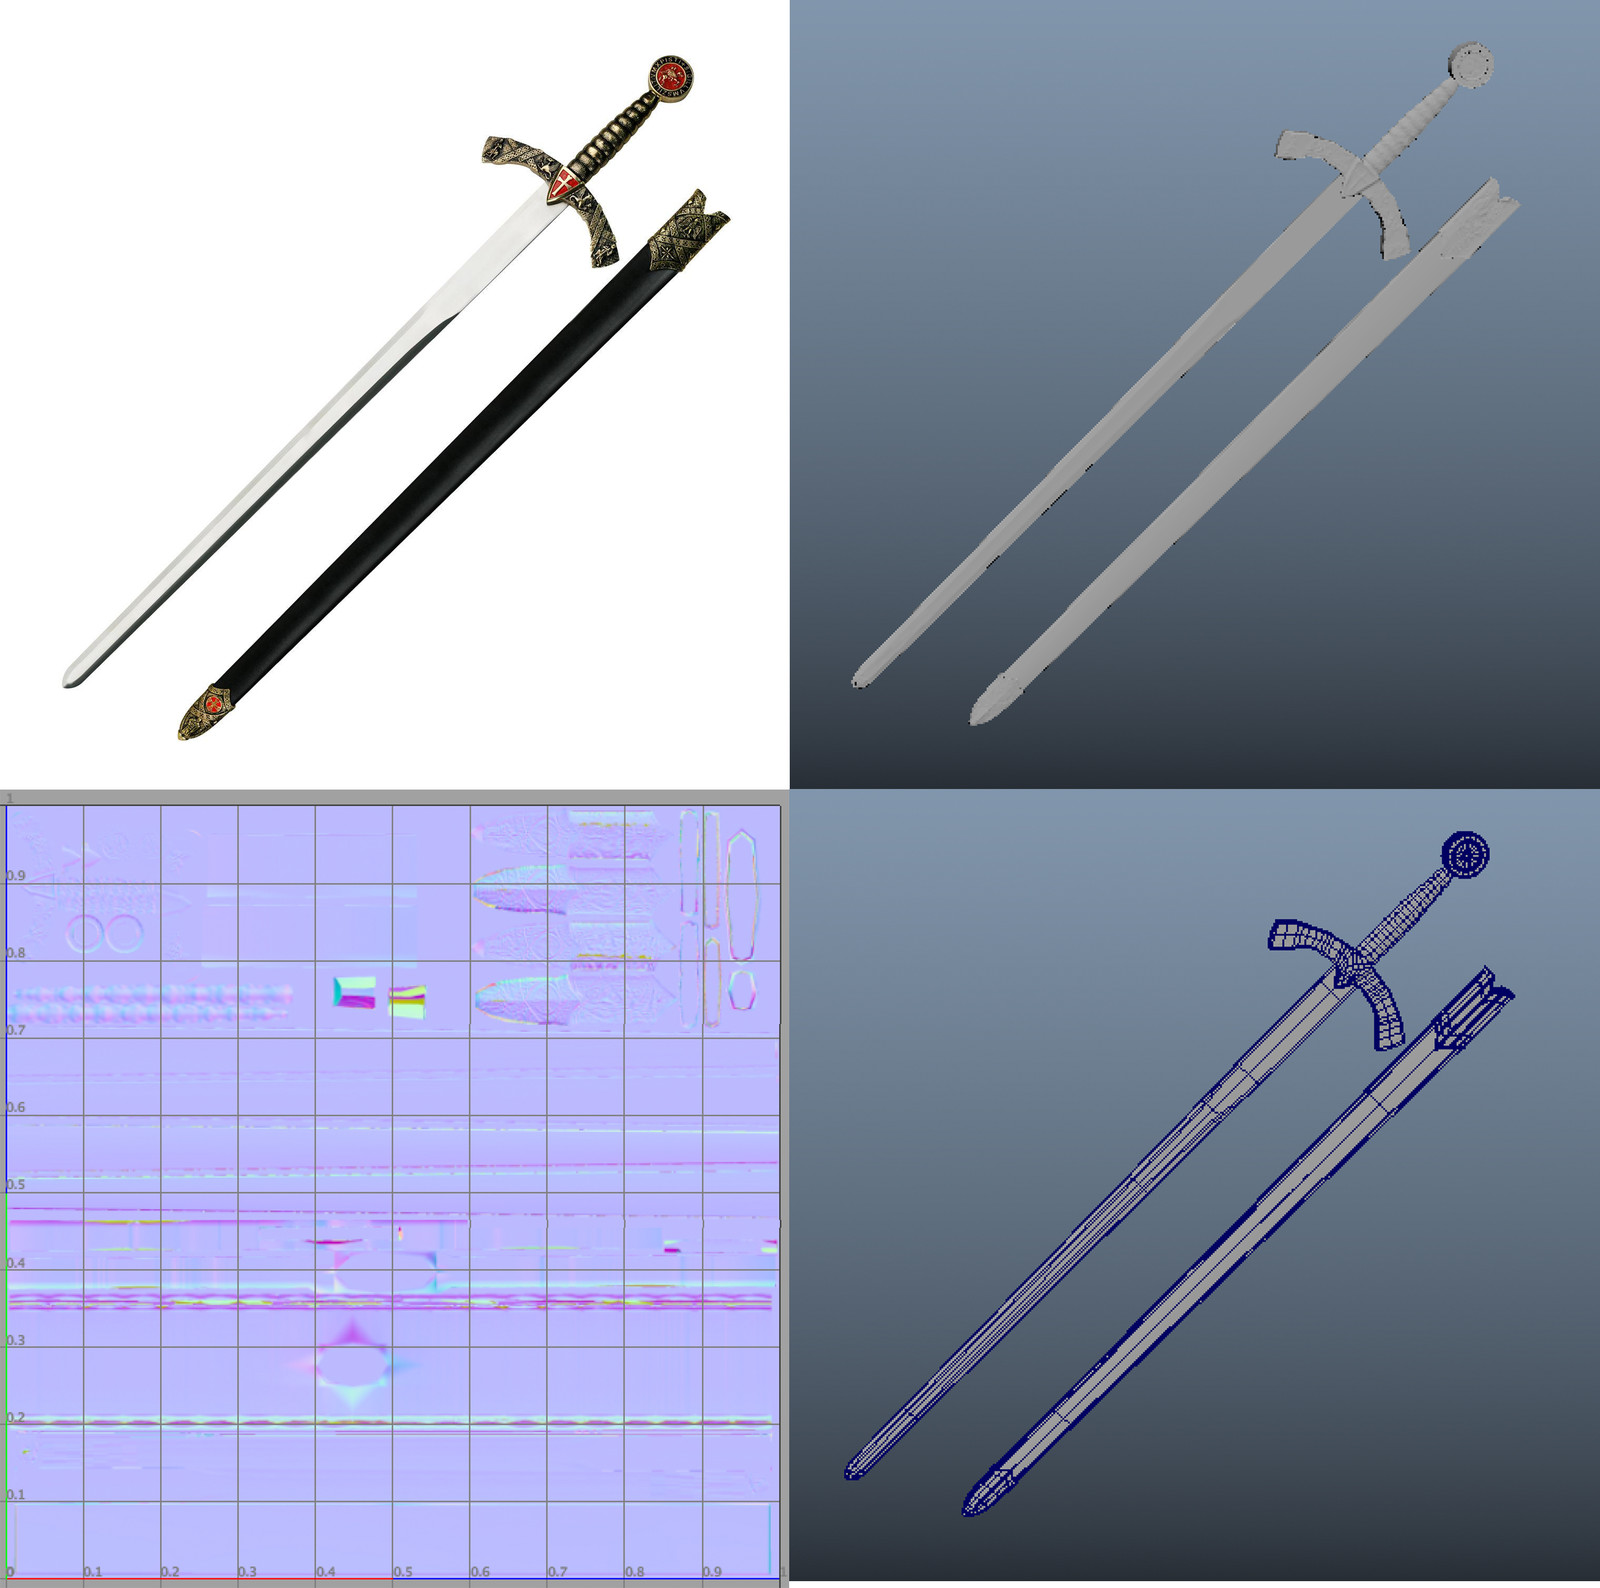 'Sword with scabbard' with UV and detail